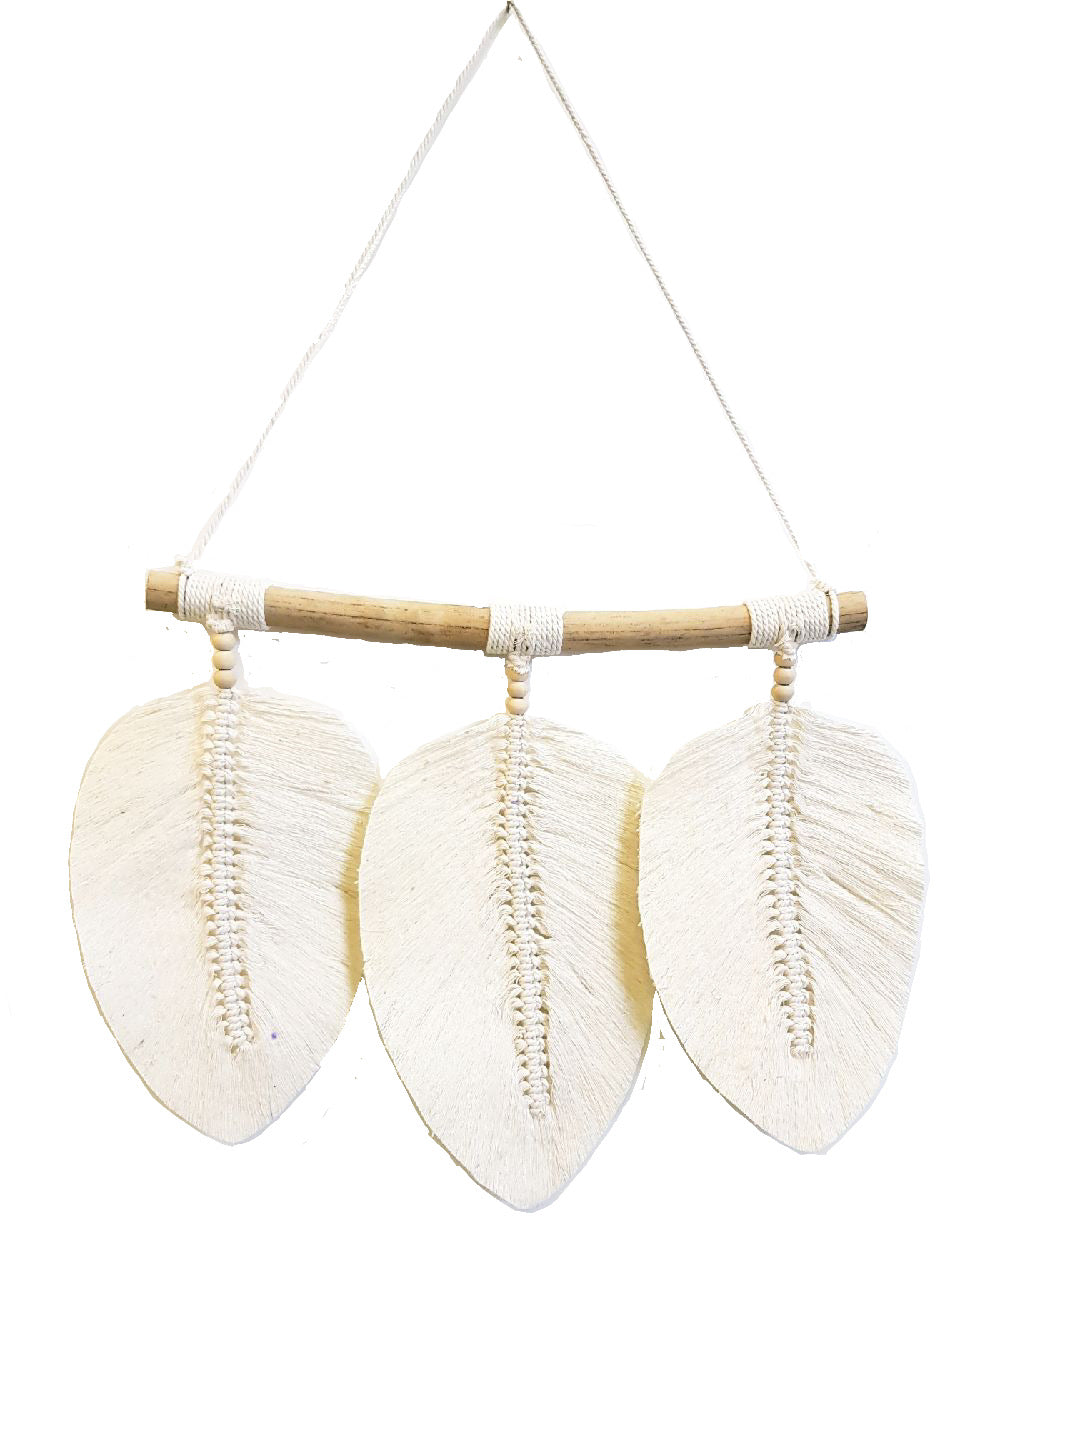 Leaves of Rwanda - Wall Hanging - Global Goddess Homewares